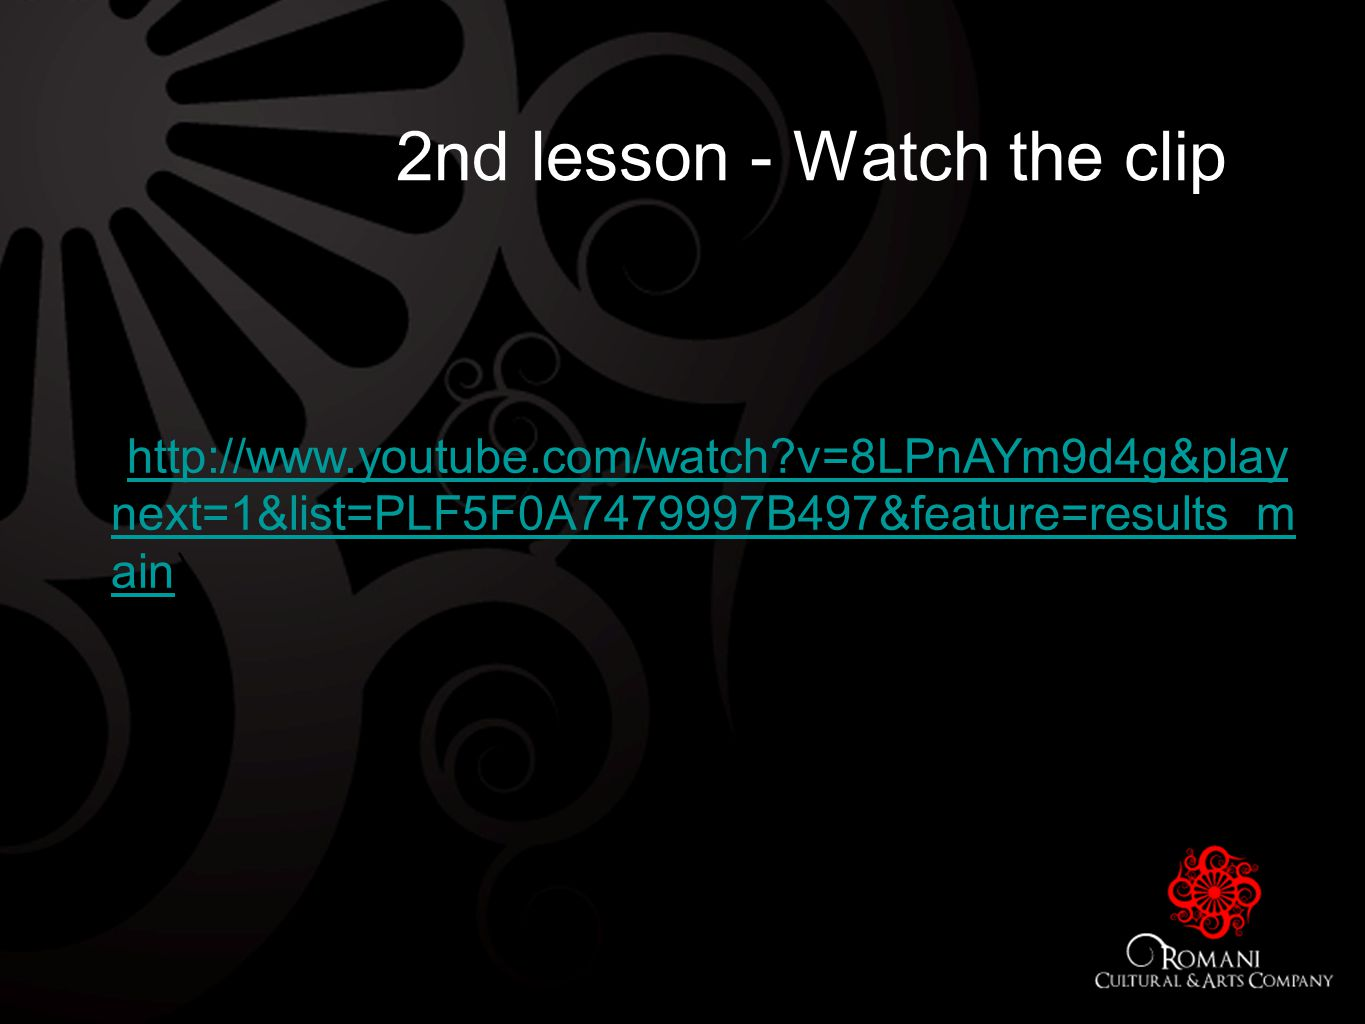 2nd lesson - Watch the clip (http://www.youtube.com/watch v=8LPnAYm9d4g&play next=1&list=PLF5F0A7479997B497&feature=results_m ain)http://www.youtube.com/watch v=8LPnAYm9d4g&play next=1&list=PLF5F0A7479997B497&feature=results_m ain